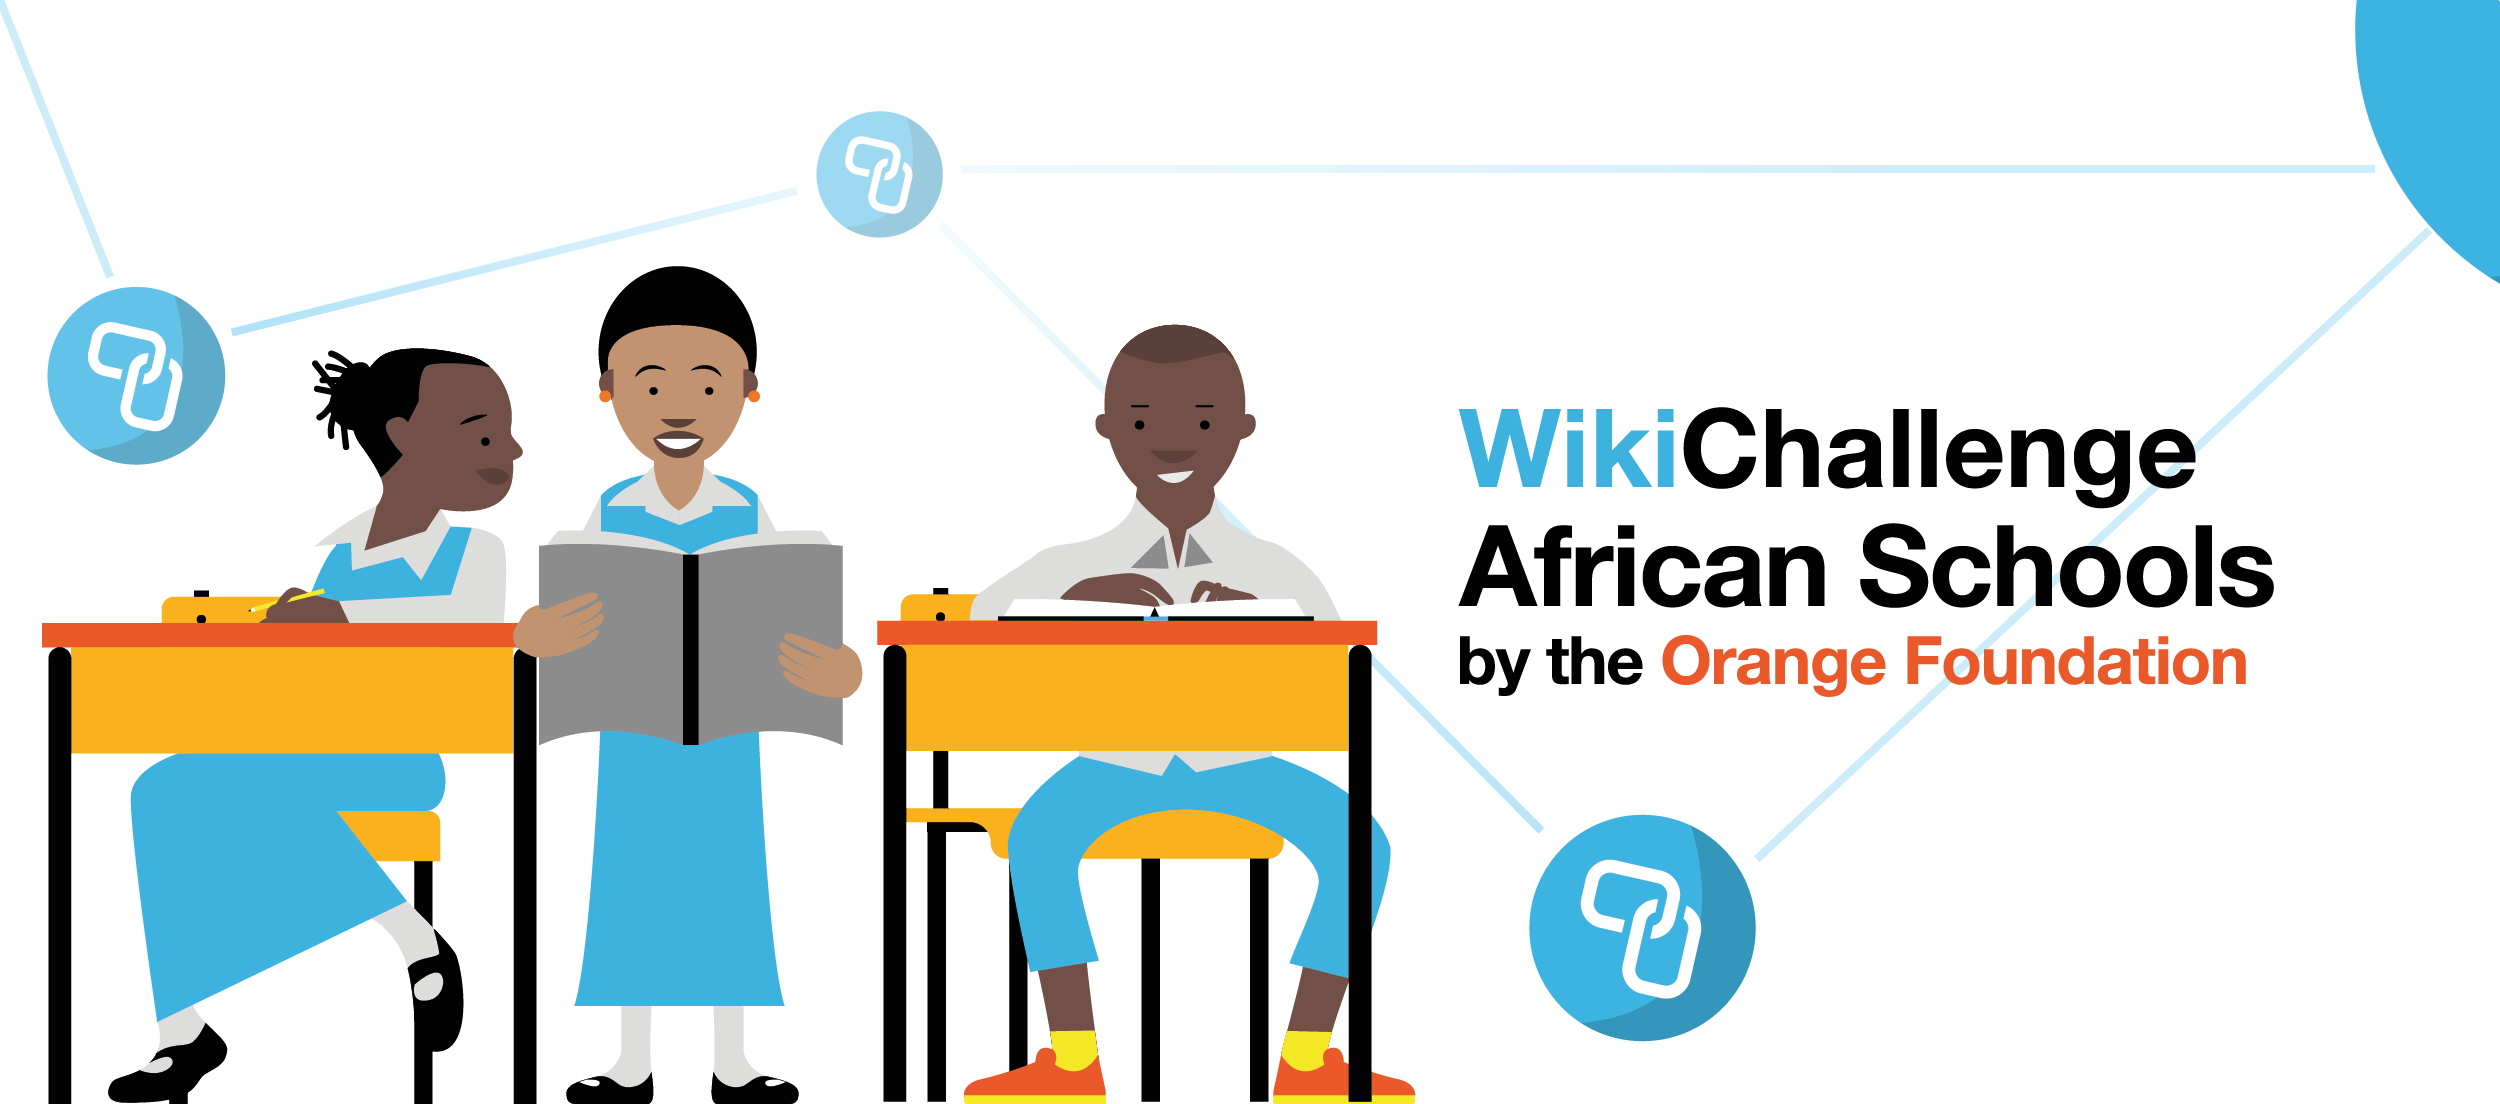 WikiChallenge African Schools … the fun way for pupils to contribute encyclopedia articles